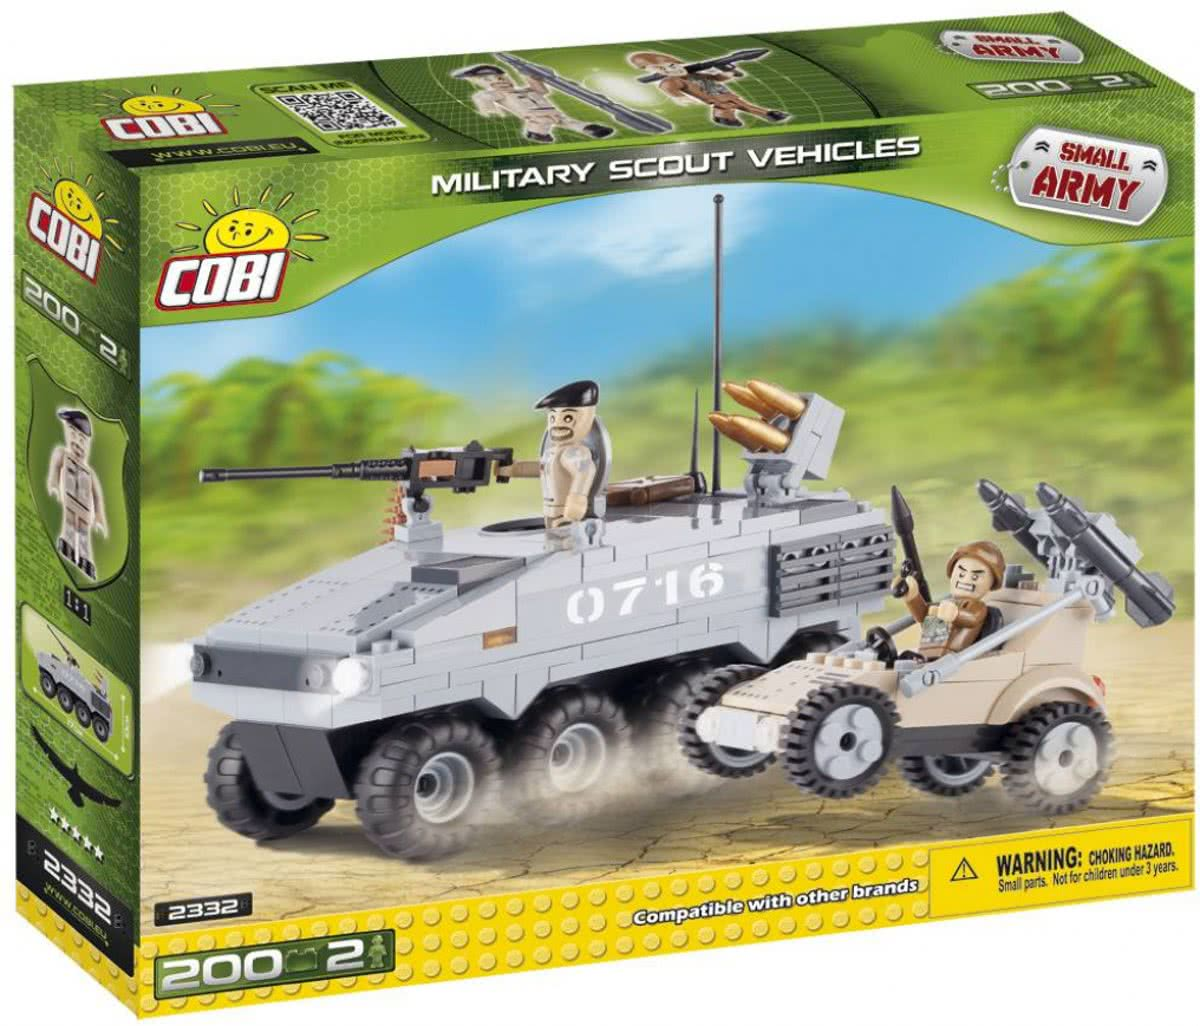 Cobi - Small Army - Military Scout Vehicles (2332)